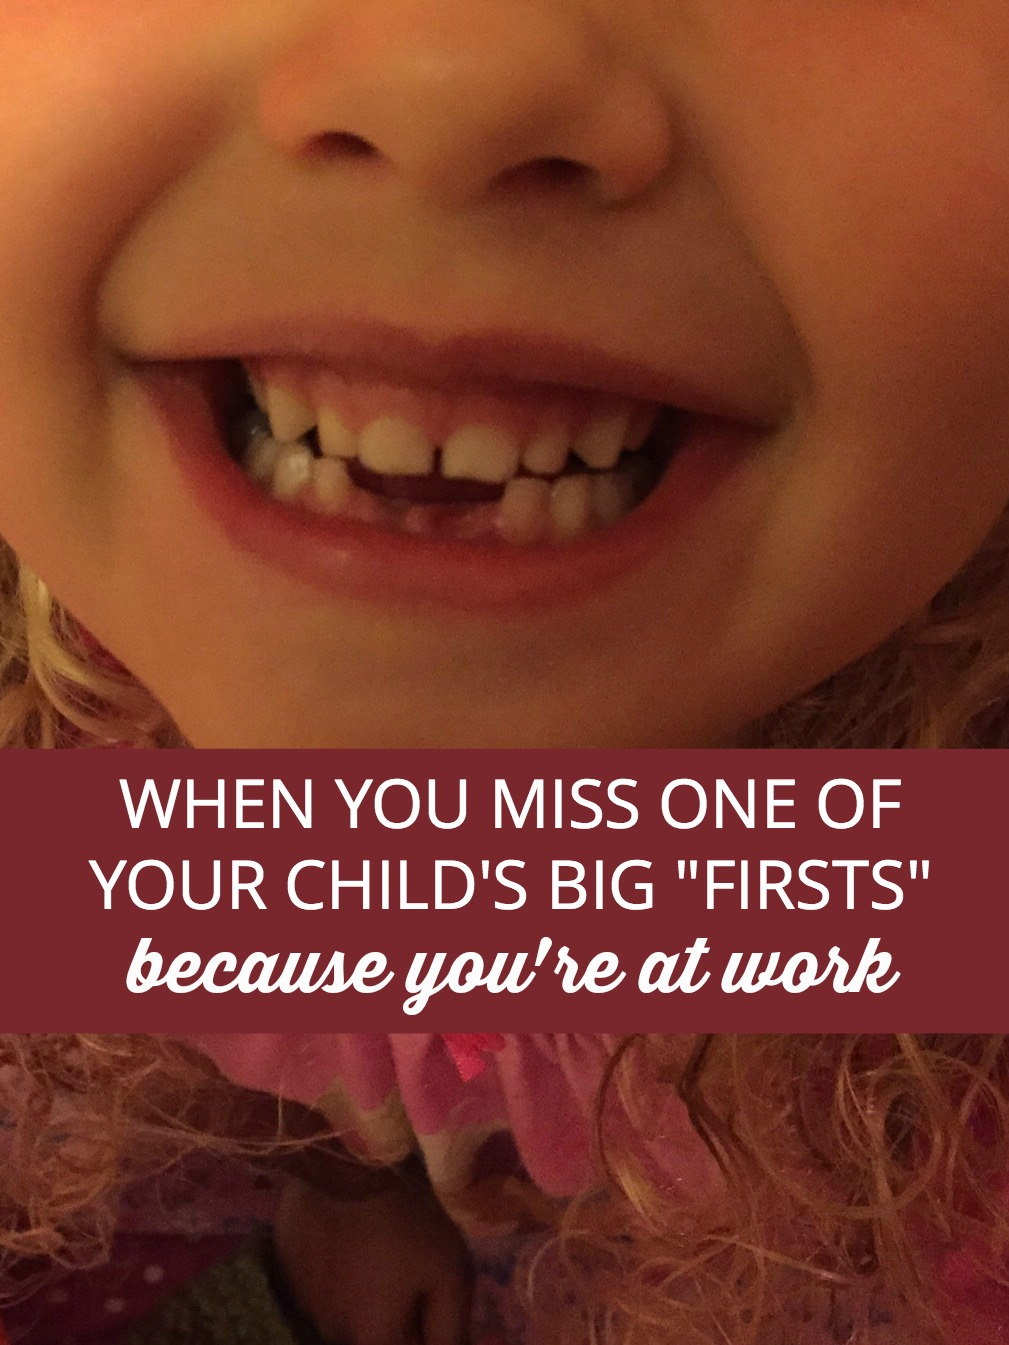 How do you cope with missing major milestones as a working mom?